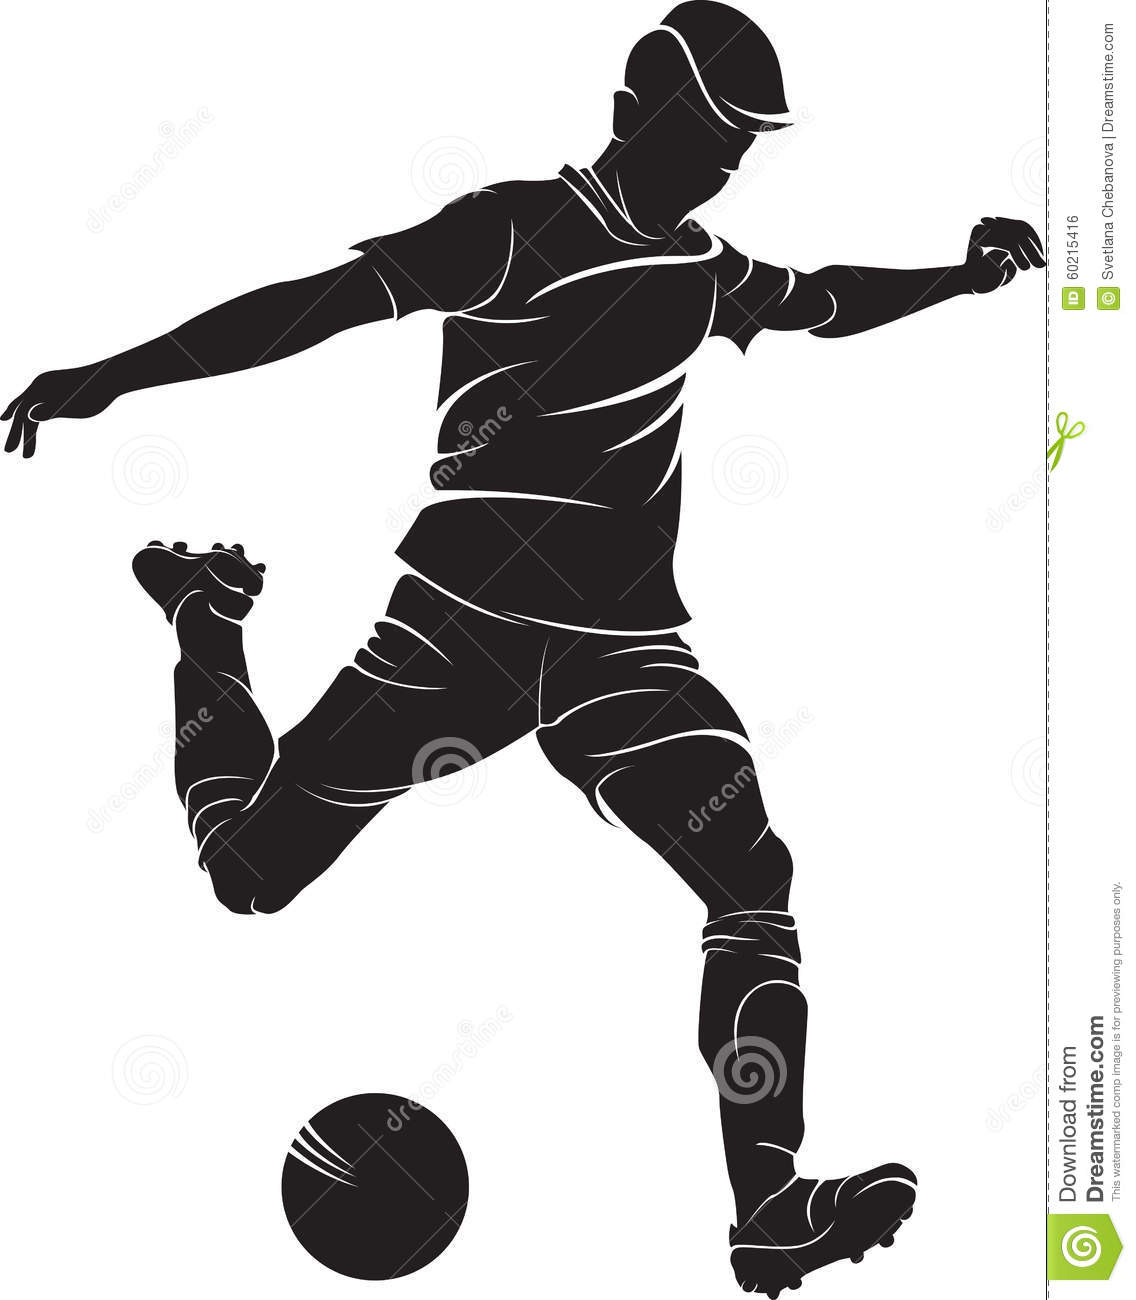 Football soccer player silhouette